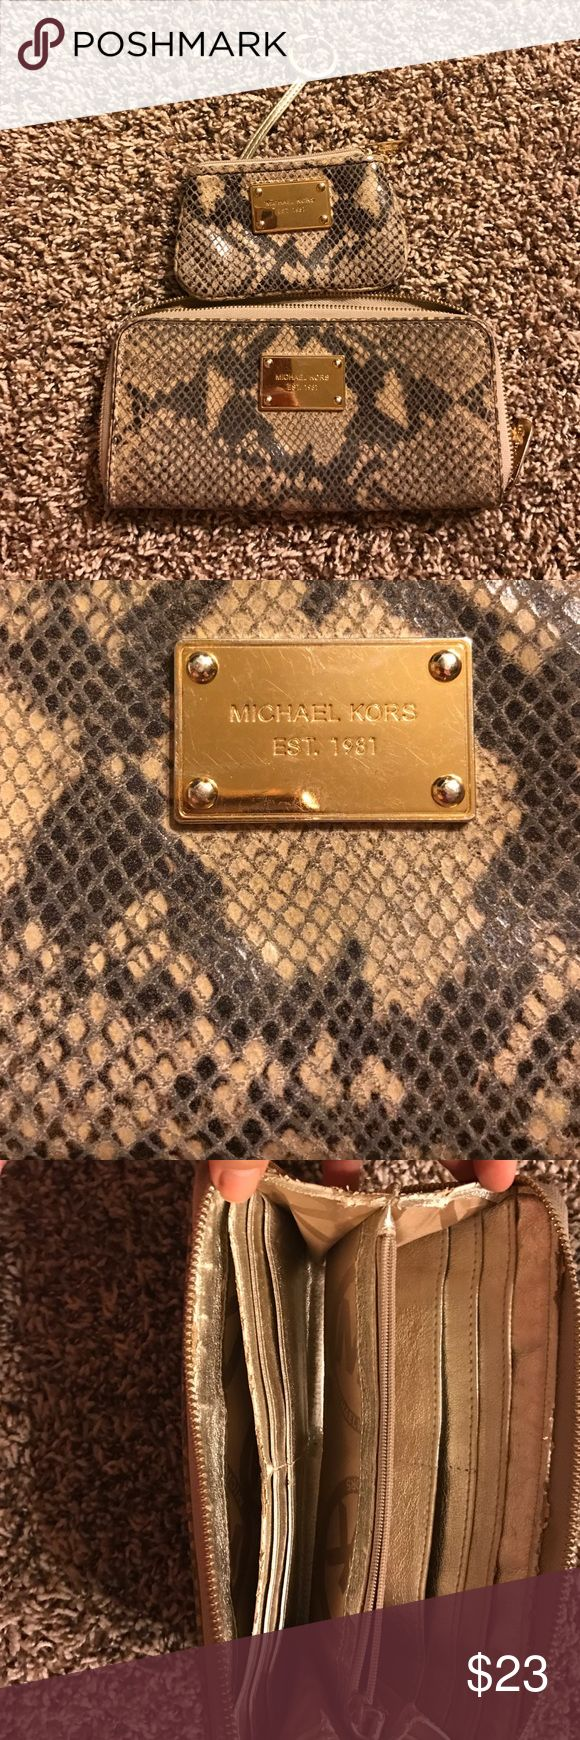 Michael Kors snake skin wallet and coin purse Micheal kors used wallet and coin purse. Both have significant amount of wear. Michael Kors Bags Wallets